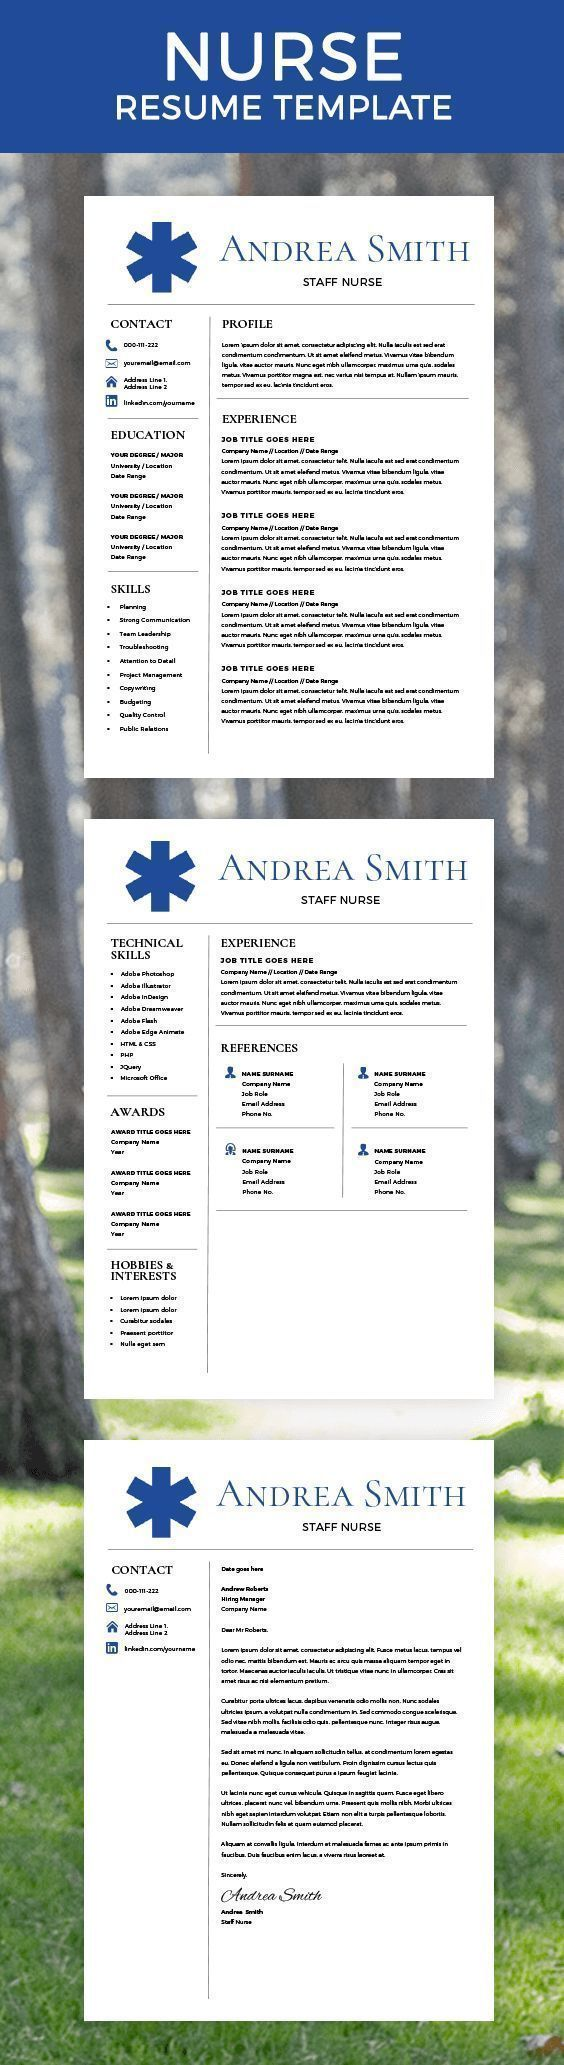 Nurse Resume Template Nurse Staff